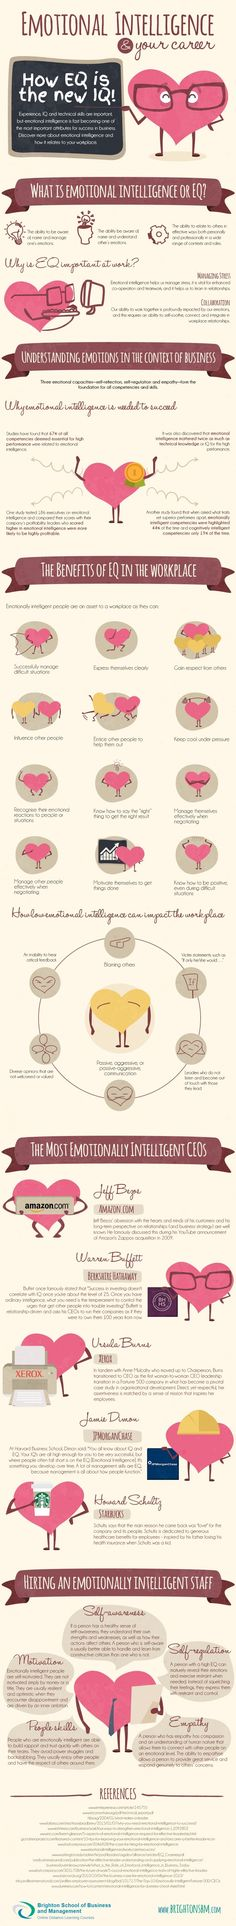 Emotional Intelligence and Your Career #Infographic